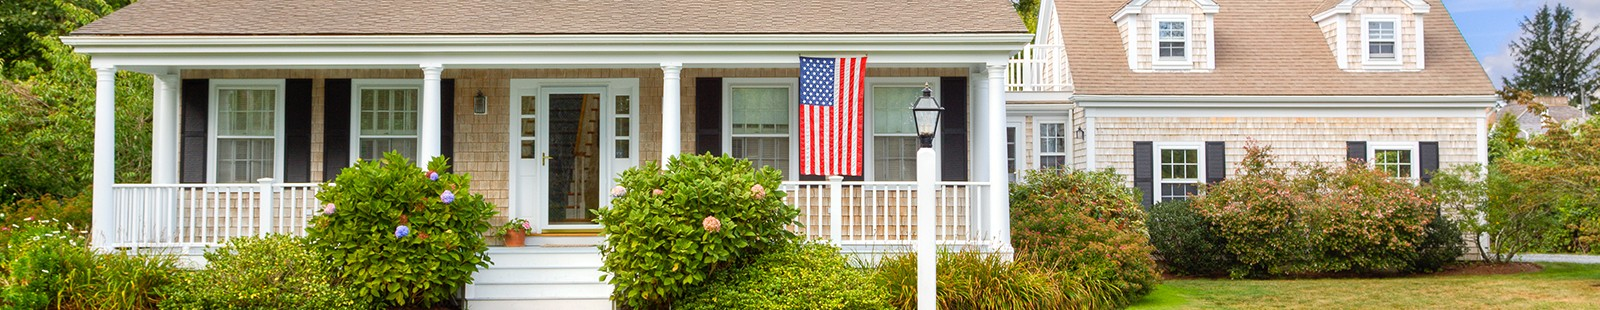 Home with American Flag hanging out front